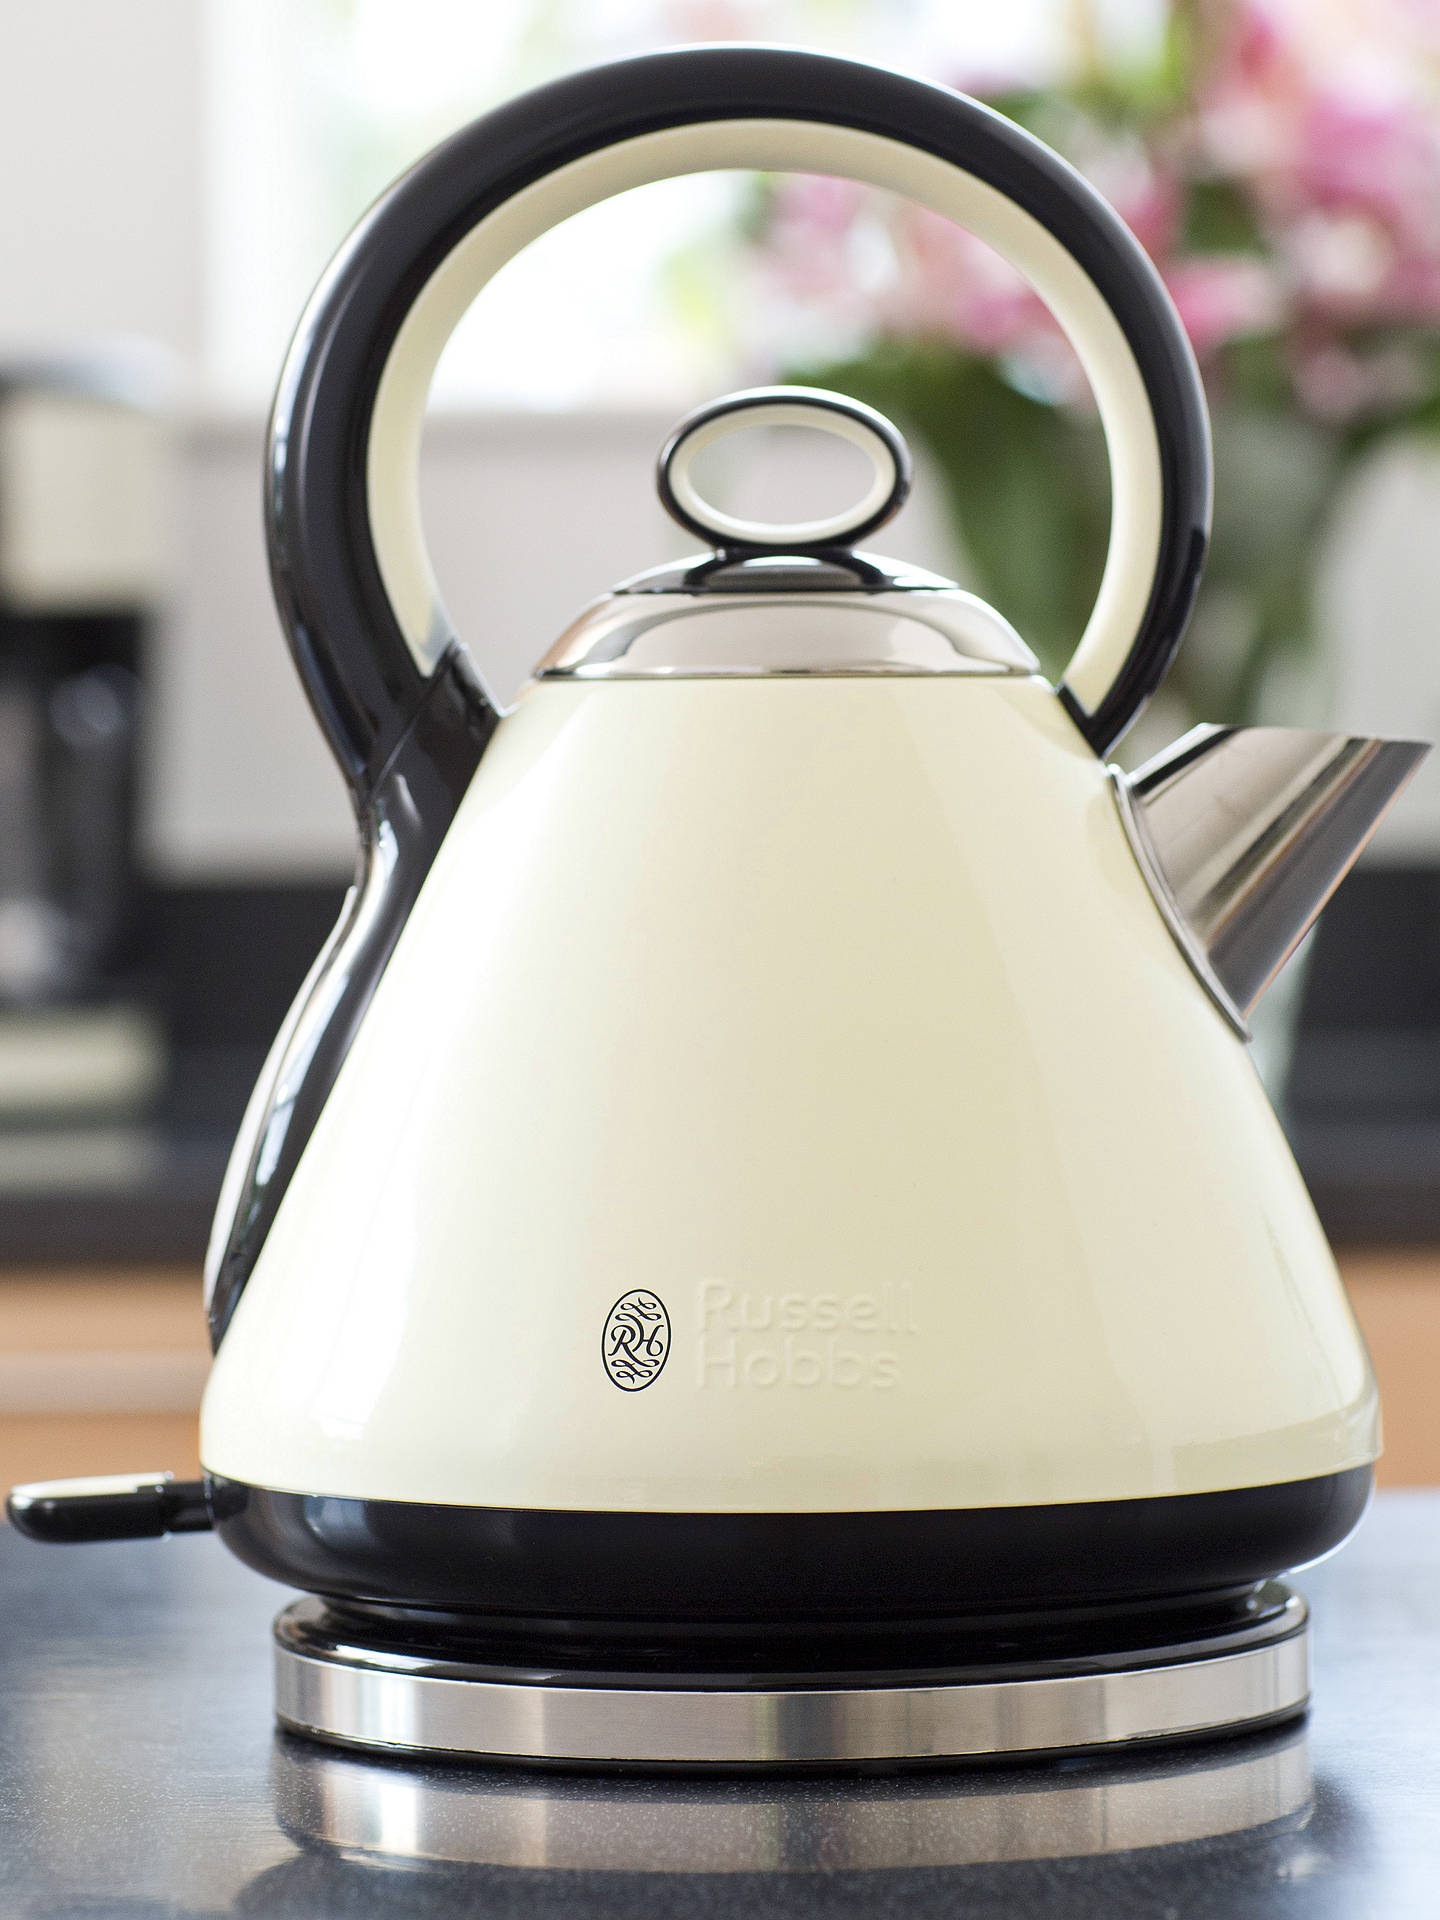 Russell Hobbs Legacy Electric Kettle, Cream at John Lewis